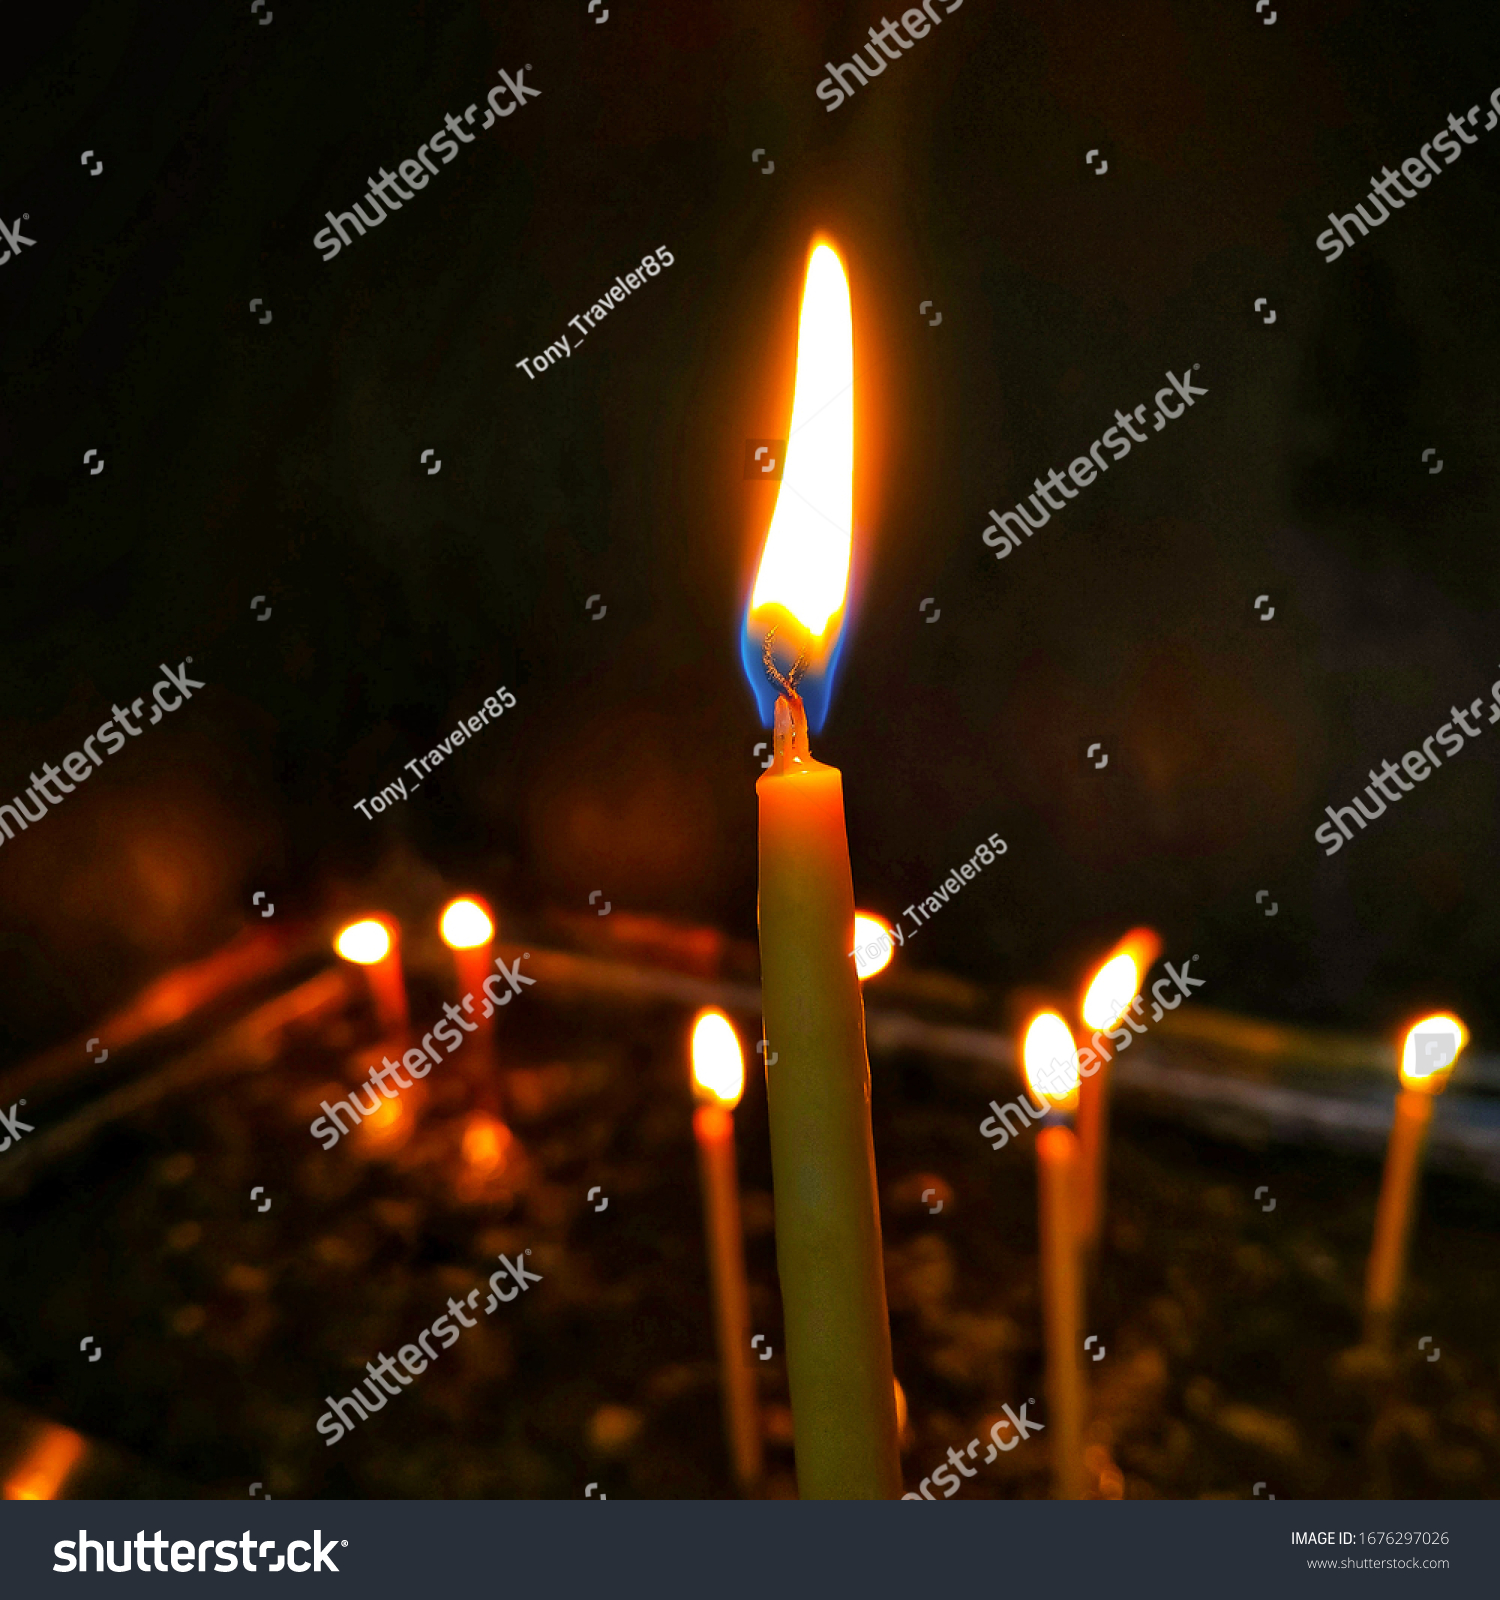 stock-photo-close-up-of-candles-light-wi